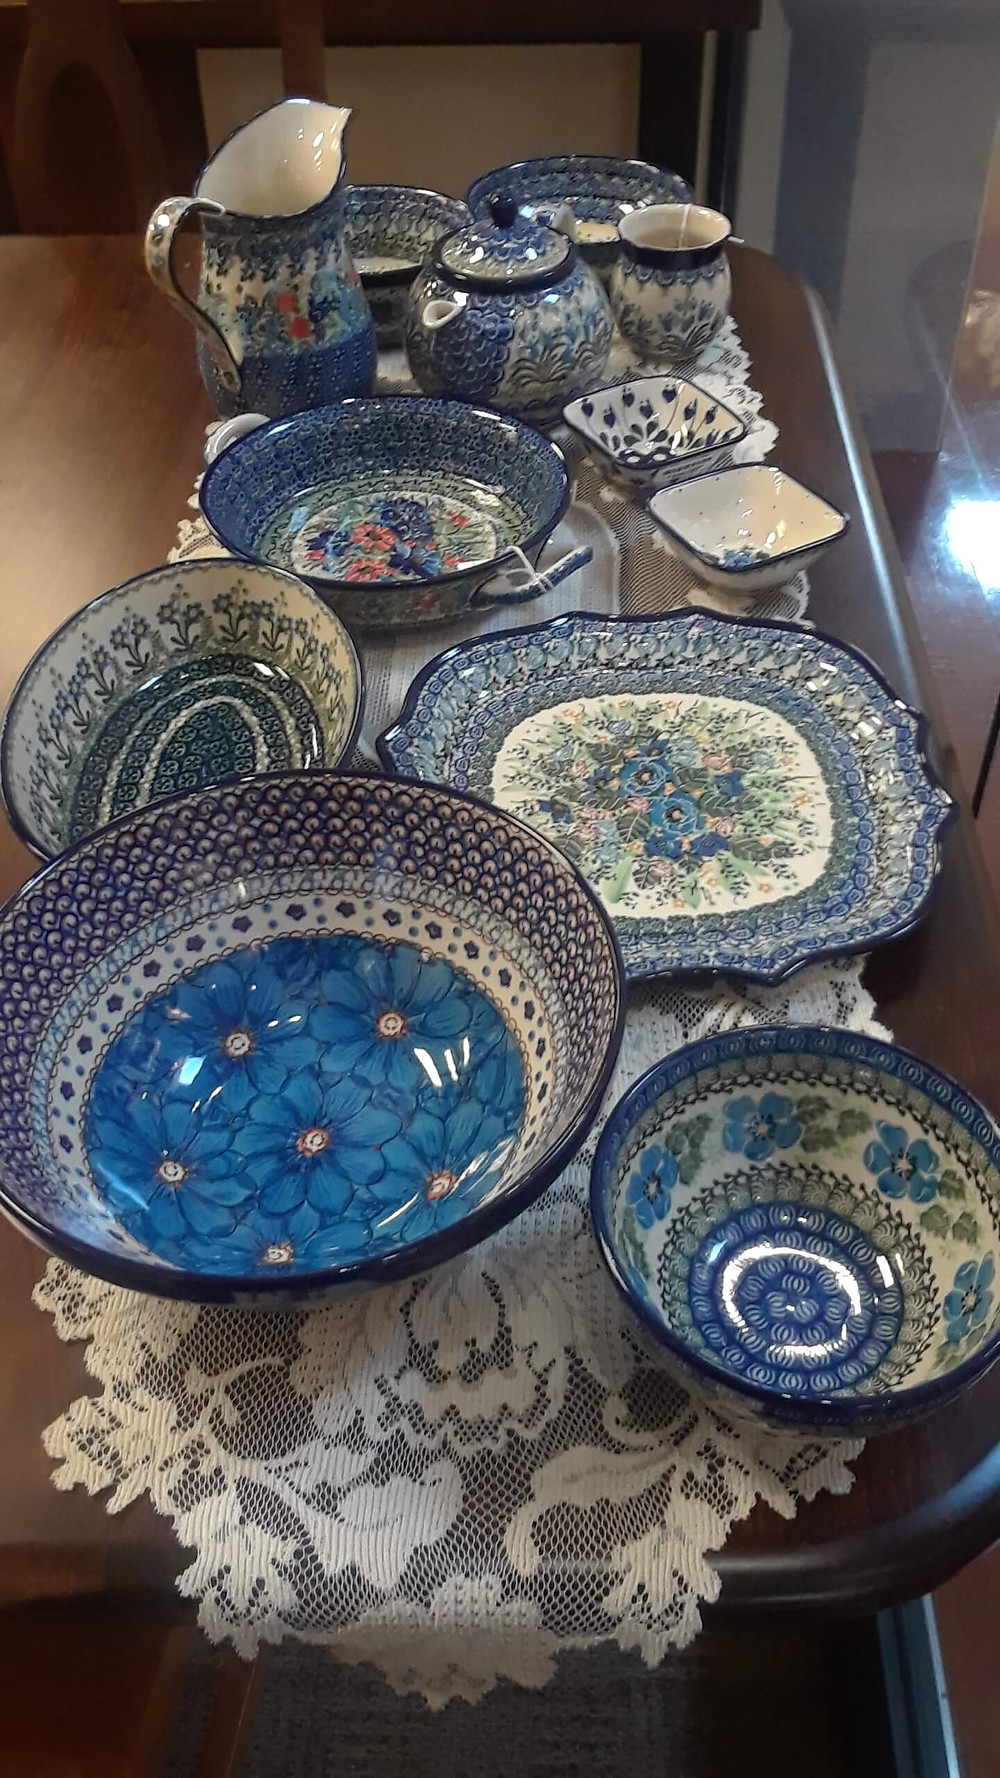 """Items Shown:  Pedestal Bowl - Morning Glory Pattern Nesting Bowl 9"""" - Blue Cosmo Unikat (U4) Pattern Serpentine Tray - Violet Delight Unikat (U930) Pattern Oval Baker 9.5"""" - Blue Spring Daisy Pattern Small Round Baker w/ Handles - U4090 Unikat (U930) Pattern Square Bowl 4"""" - Bleeding Heart Pattern Square Bowl 4"""" - Pattern 2150 Pattern Teapot 1qt - Bluebell Pattern Bubble Mug 8oz - Bluebell Pattern Pitcher 26oz - Pastel Unikat (U3) Pattern Soup/Salad Bowl - Daisy Garden (U930) Pattern Soup/Salad Bowl - Peacock Feather Pattern  Displayed on our Denver Double Pedestal Table, built in solid Rustic Cherry with Asbury stain"""